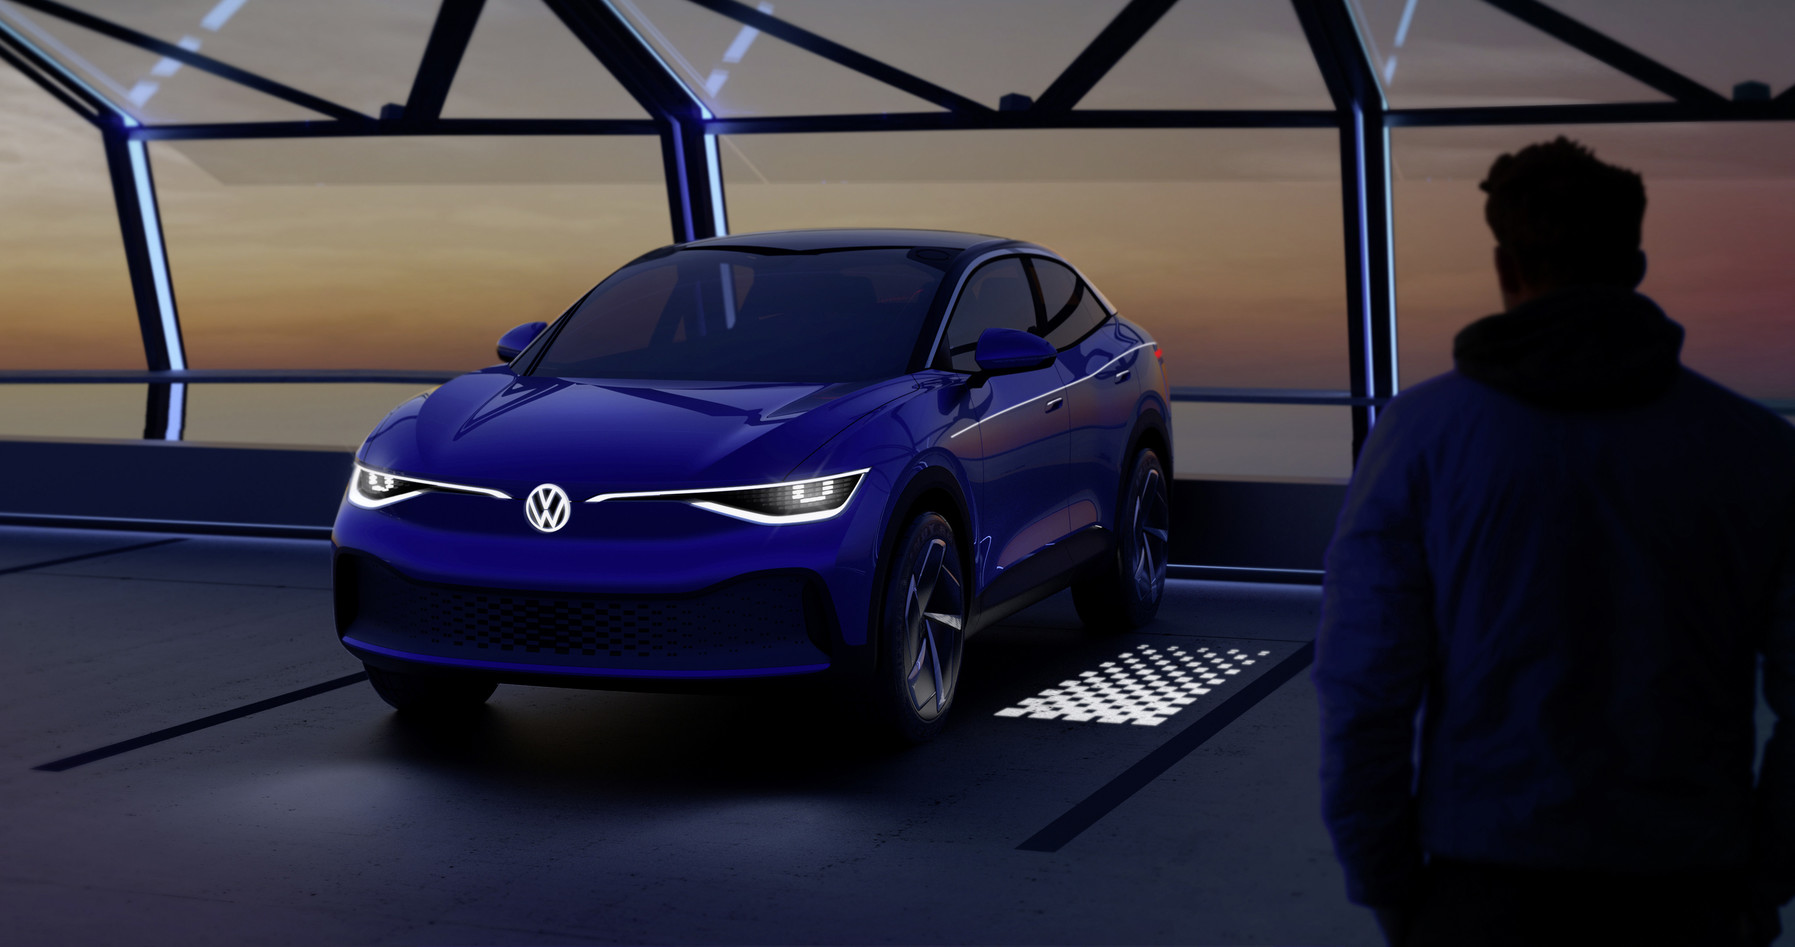 Volkswagen Shows Off Interactive Taillights and May Have